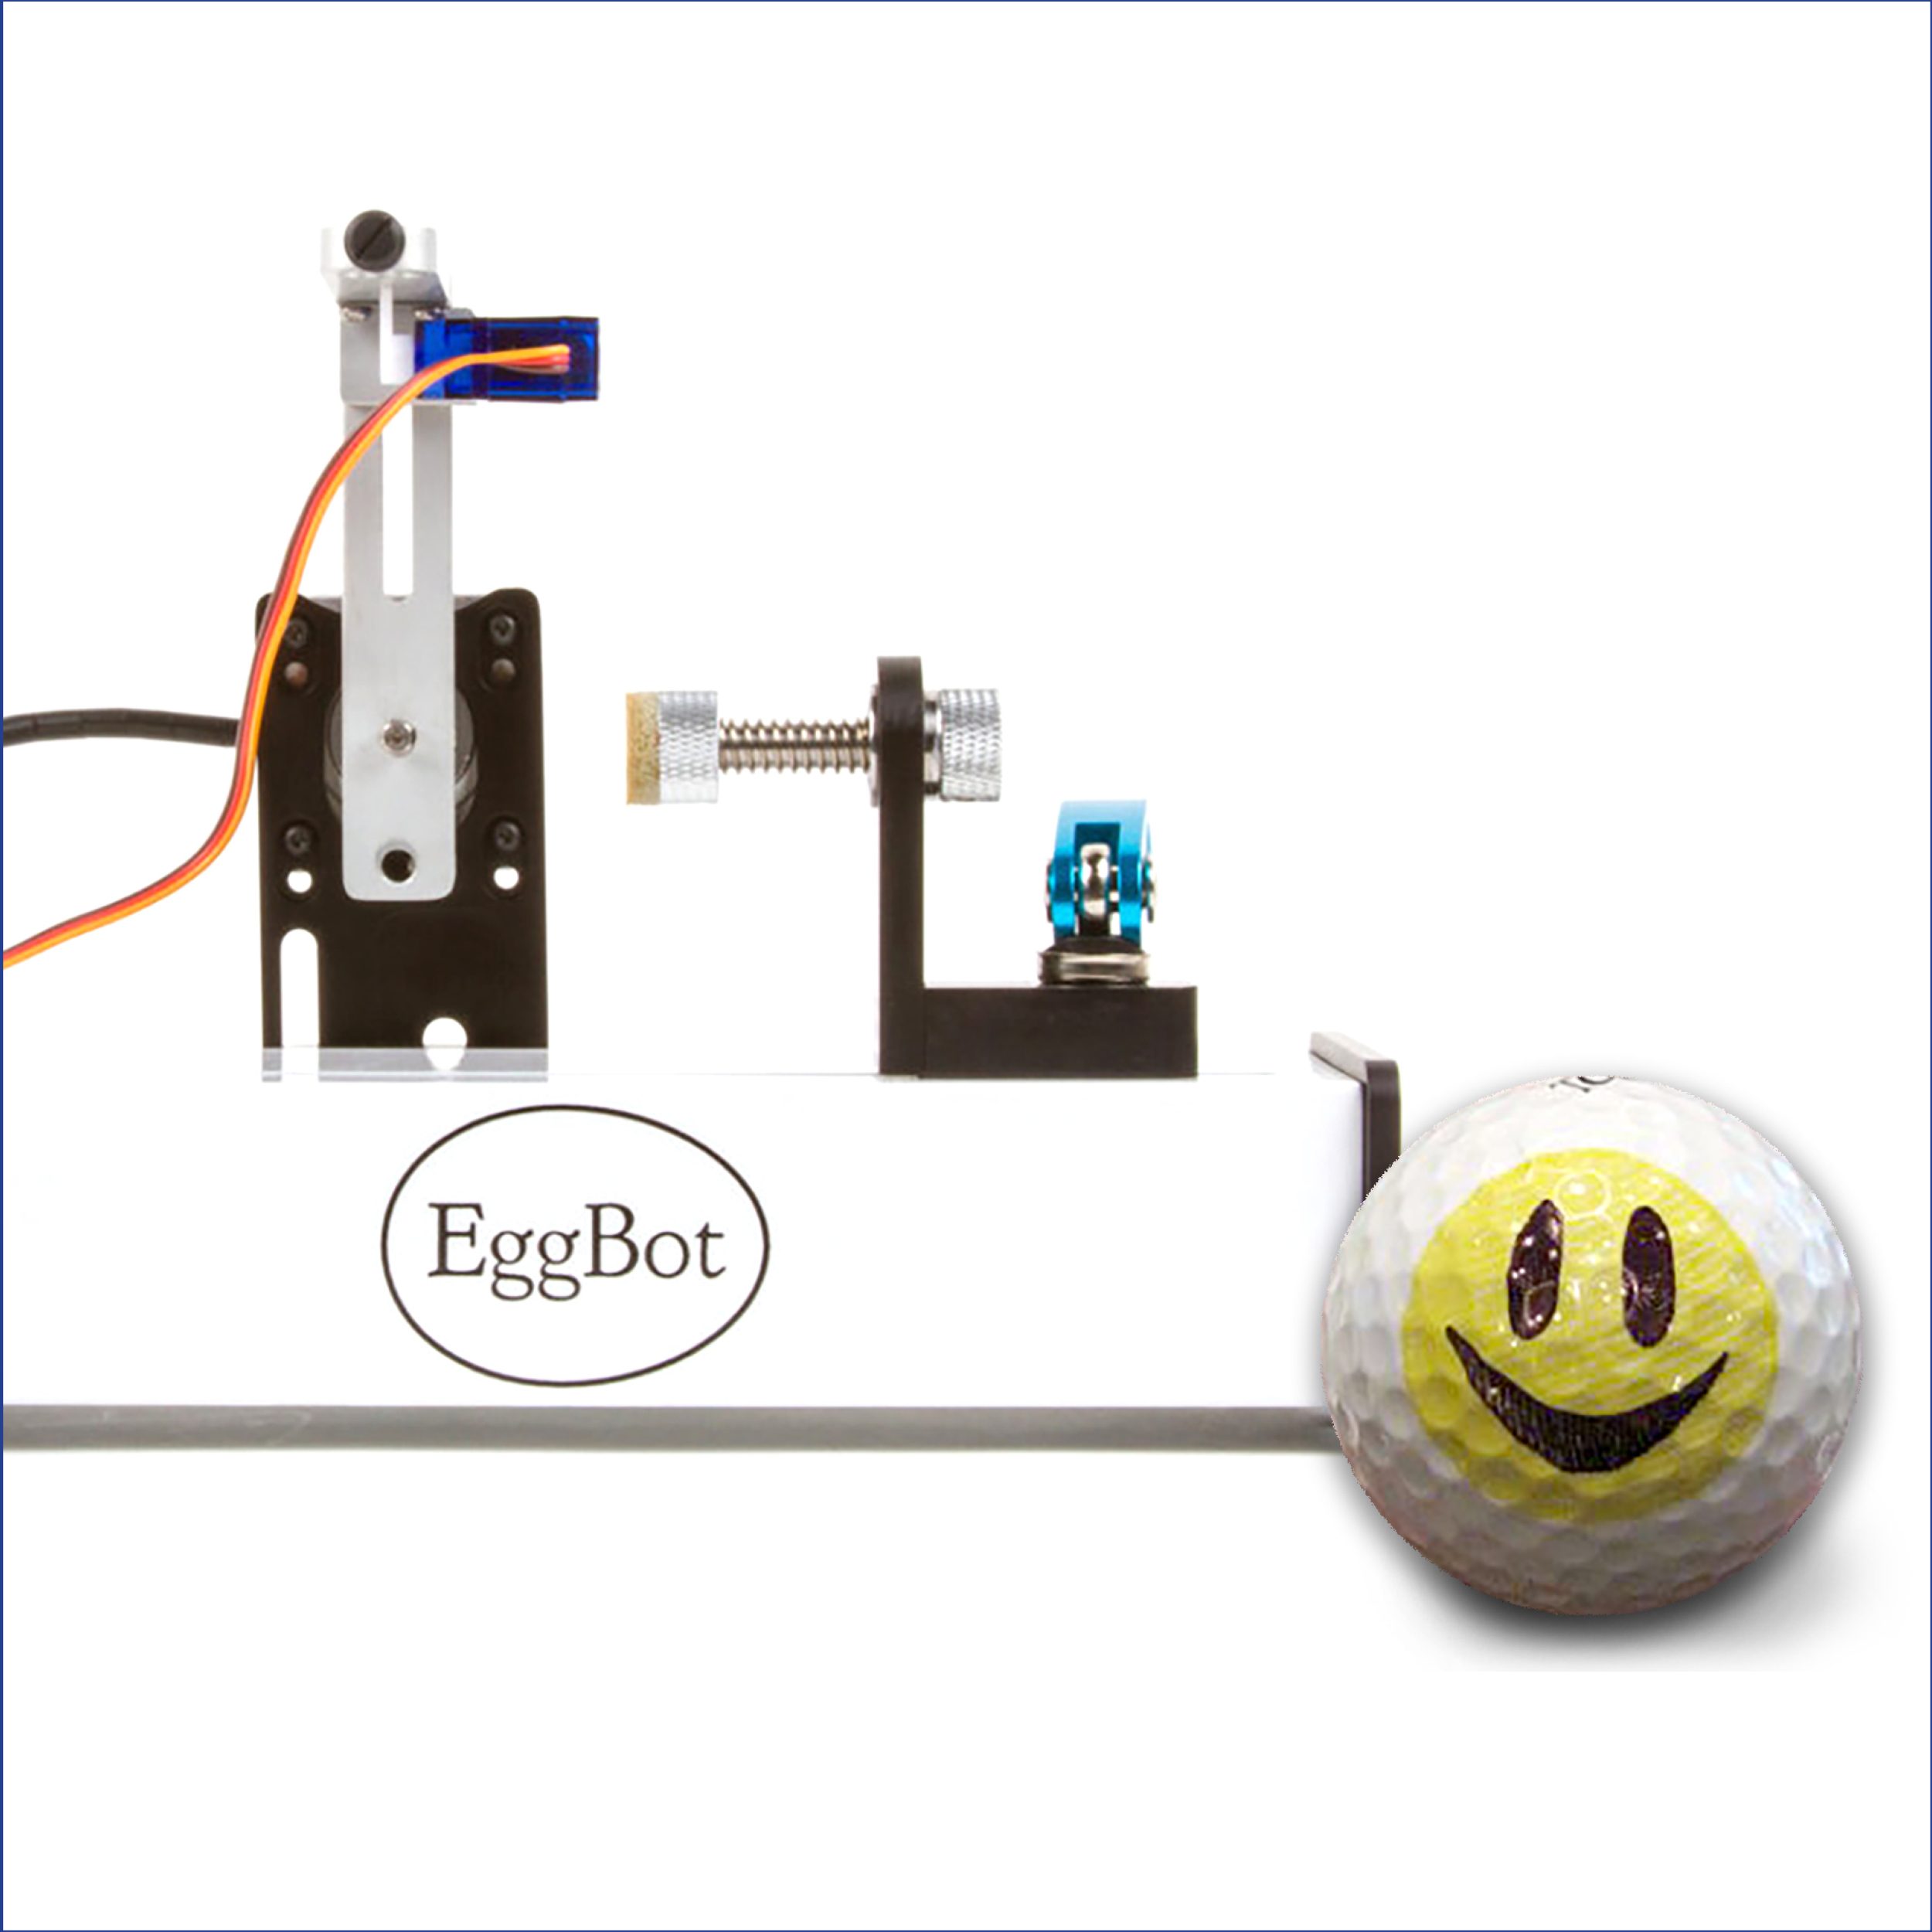 Decorate a Golf Ball with EggBot